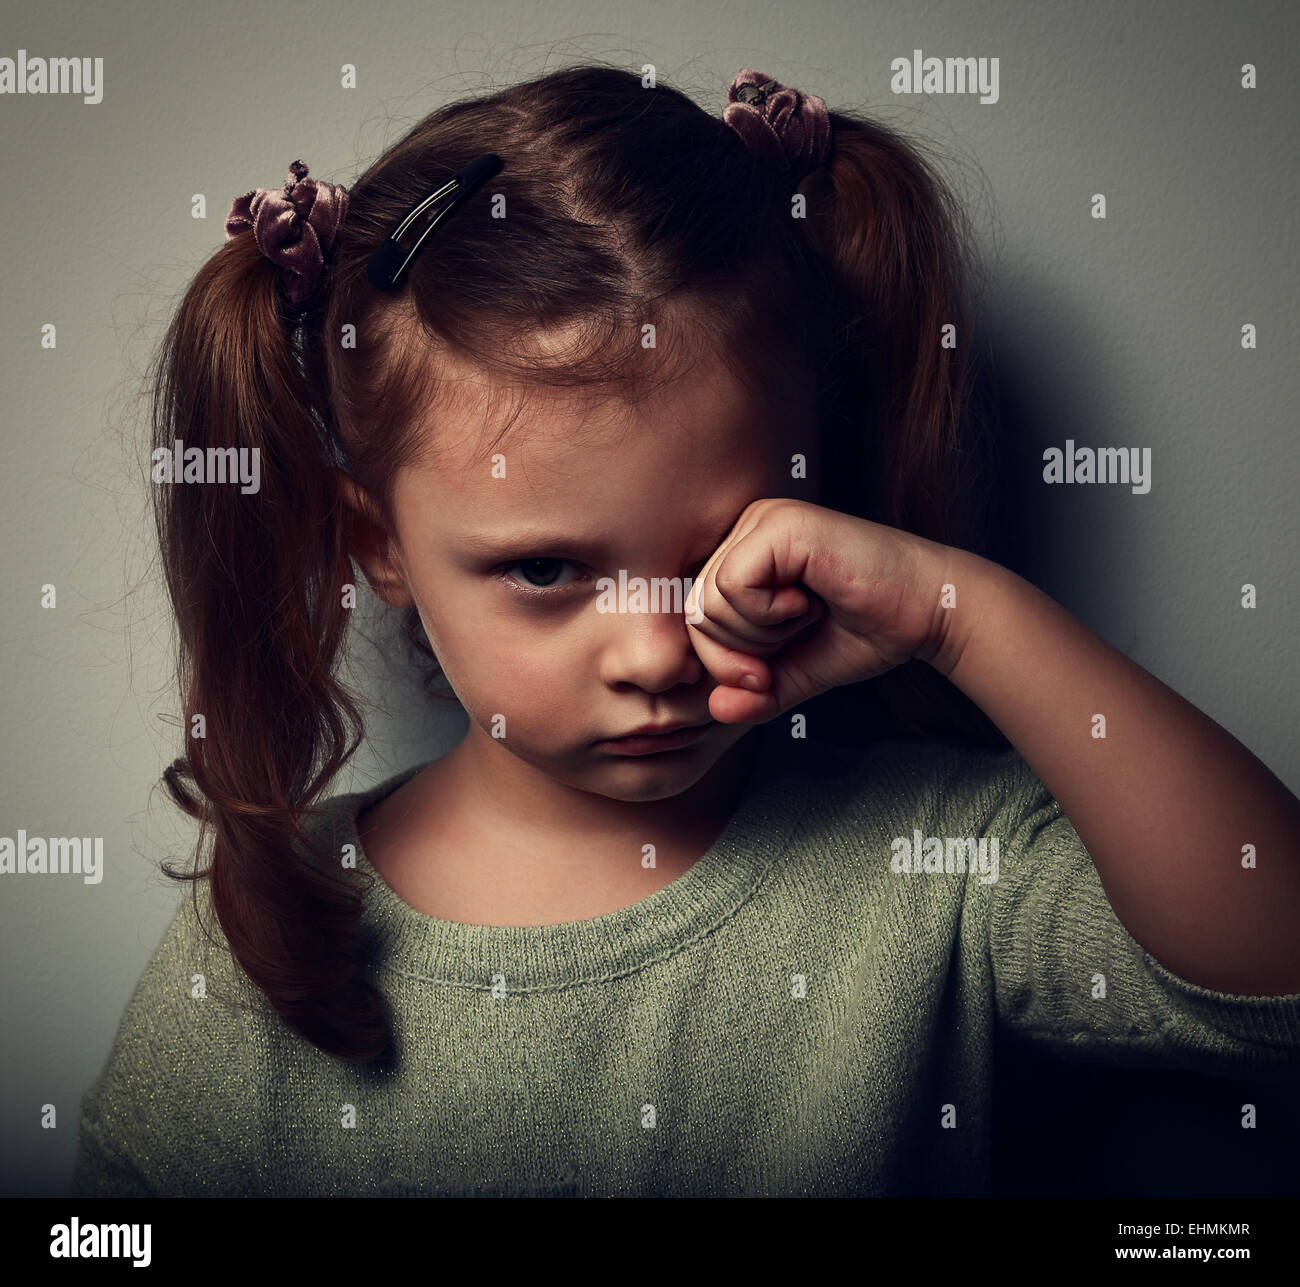 Unhappy crying kid girl in darkness. Closeup vintage portrait - Stock Image